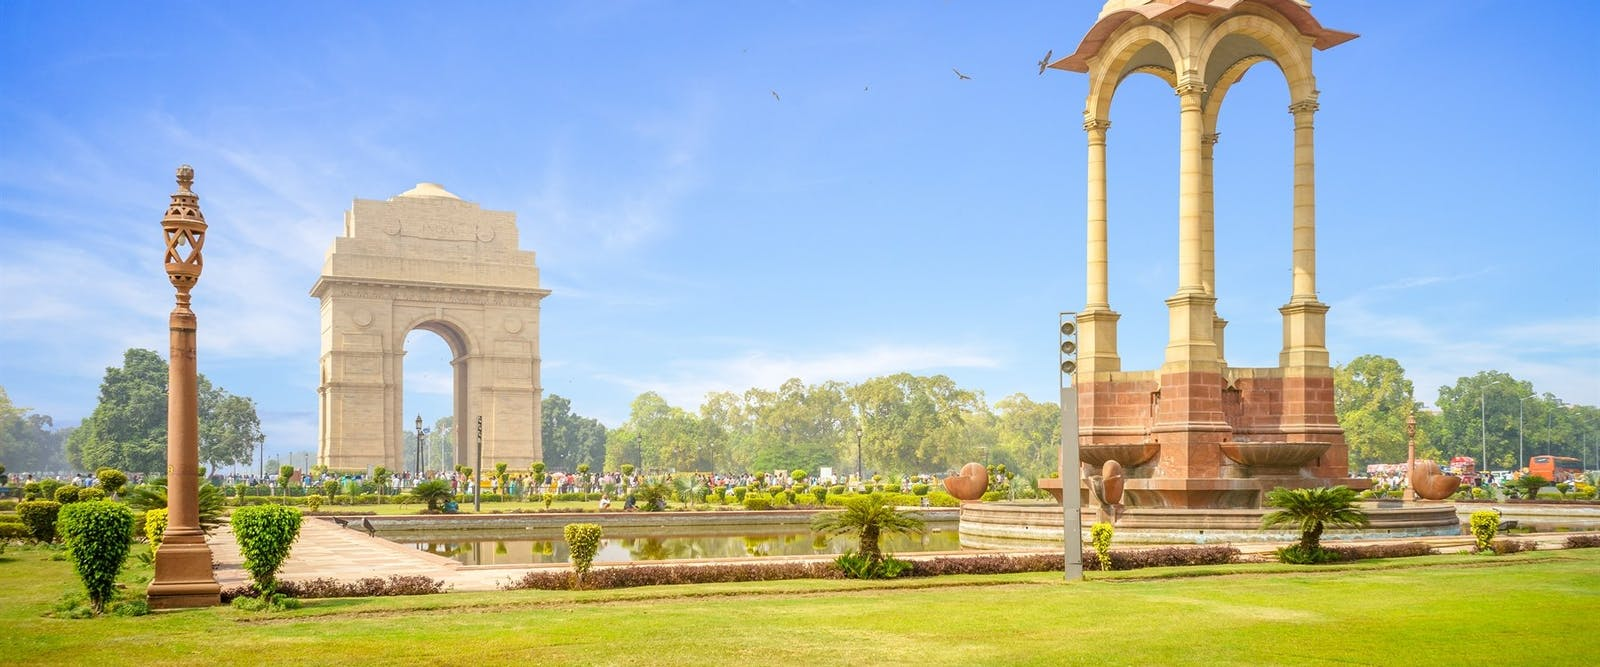 Canopy and India Gate in New Delhi, India